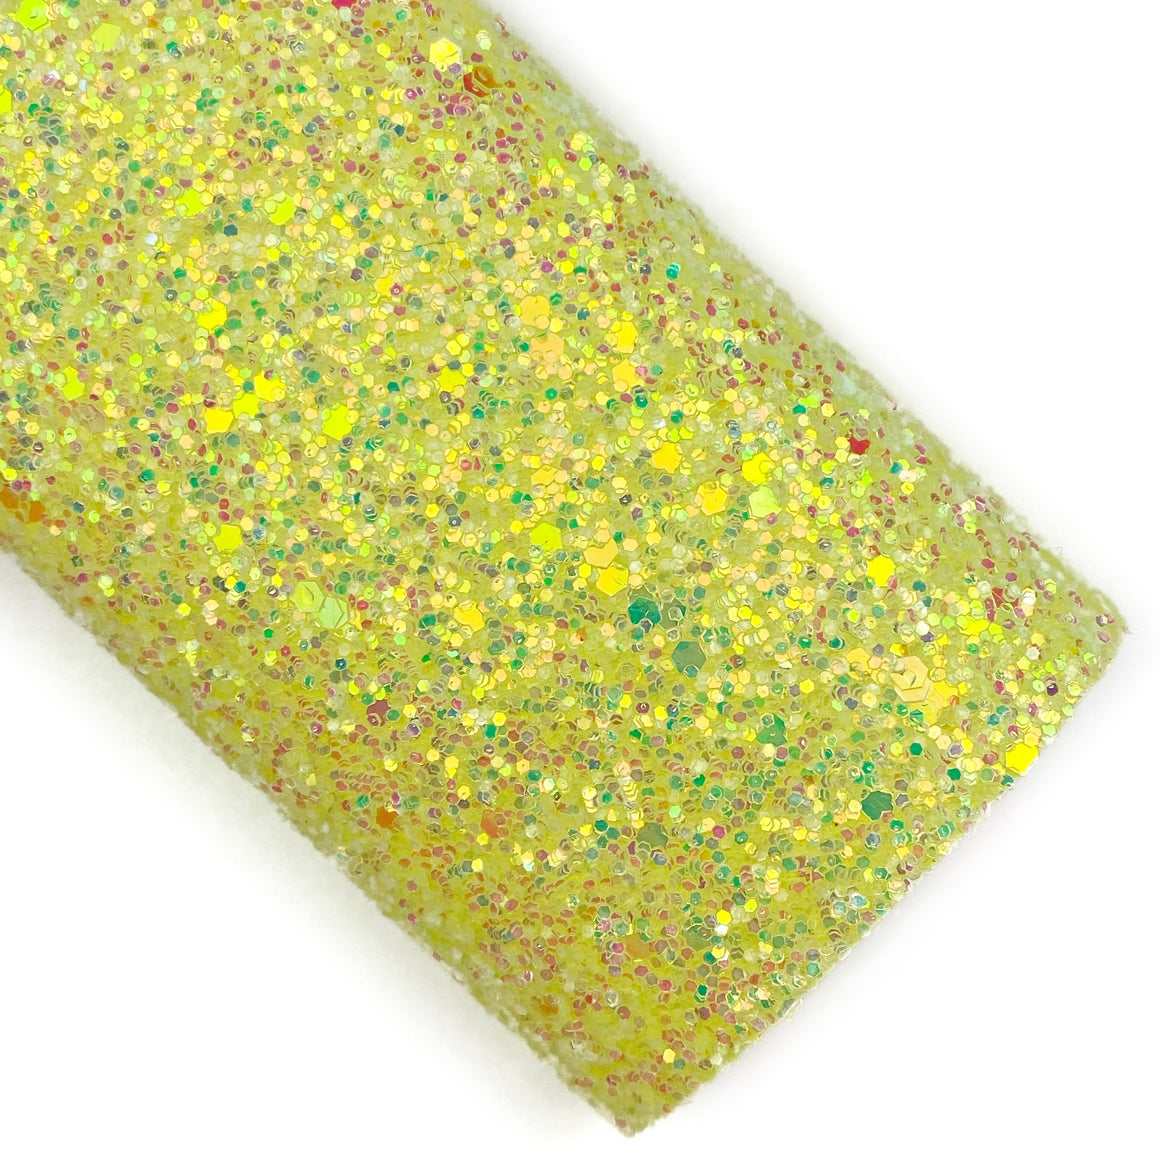 Soft Yellow Opalescent Glitter